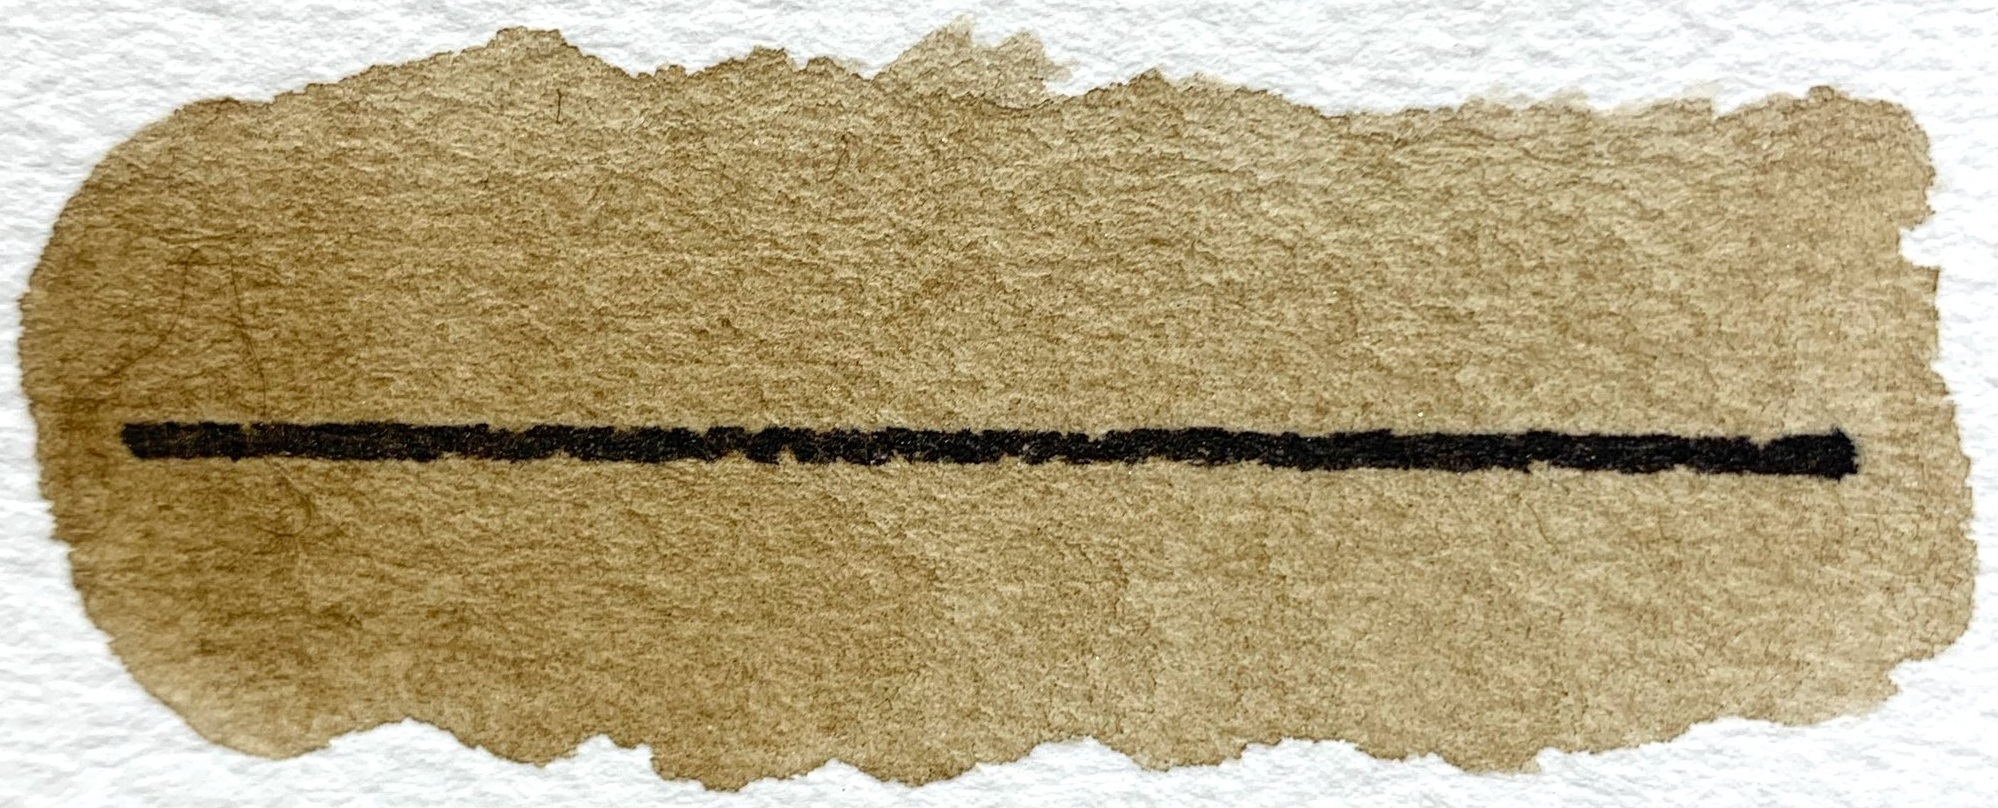 Southern Fried Paint - PY43, PBk11, semitransparent, excellent lightfastness, low staining,